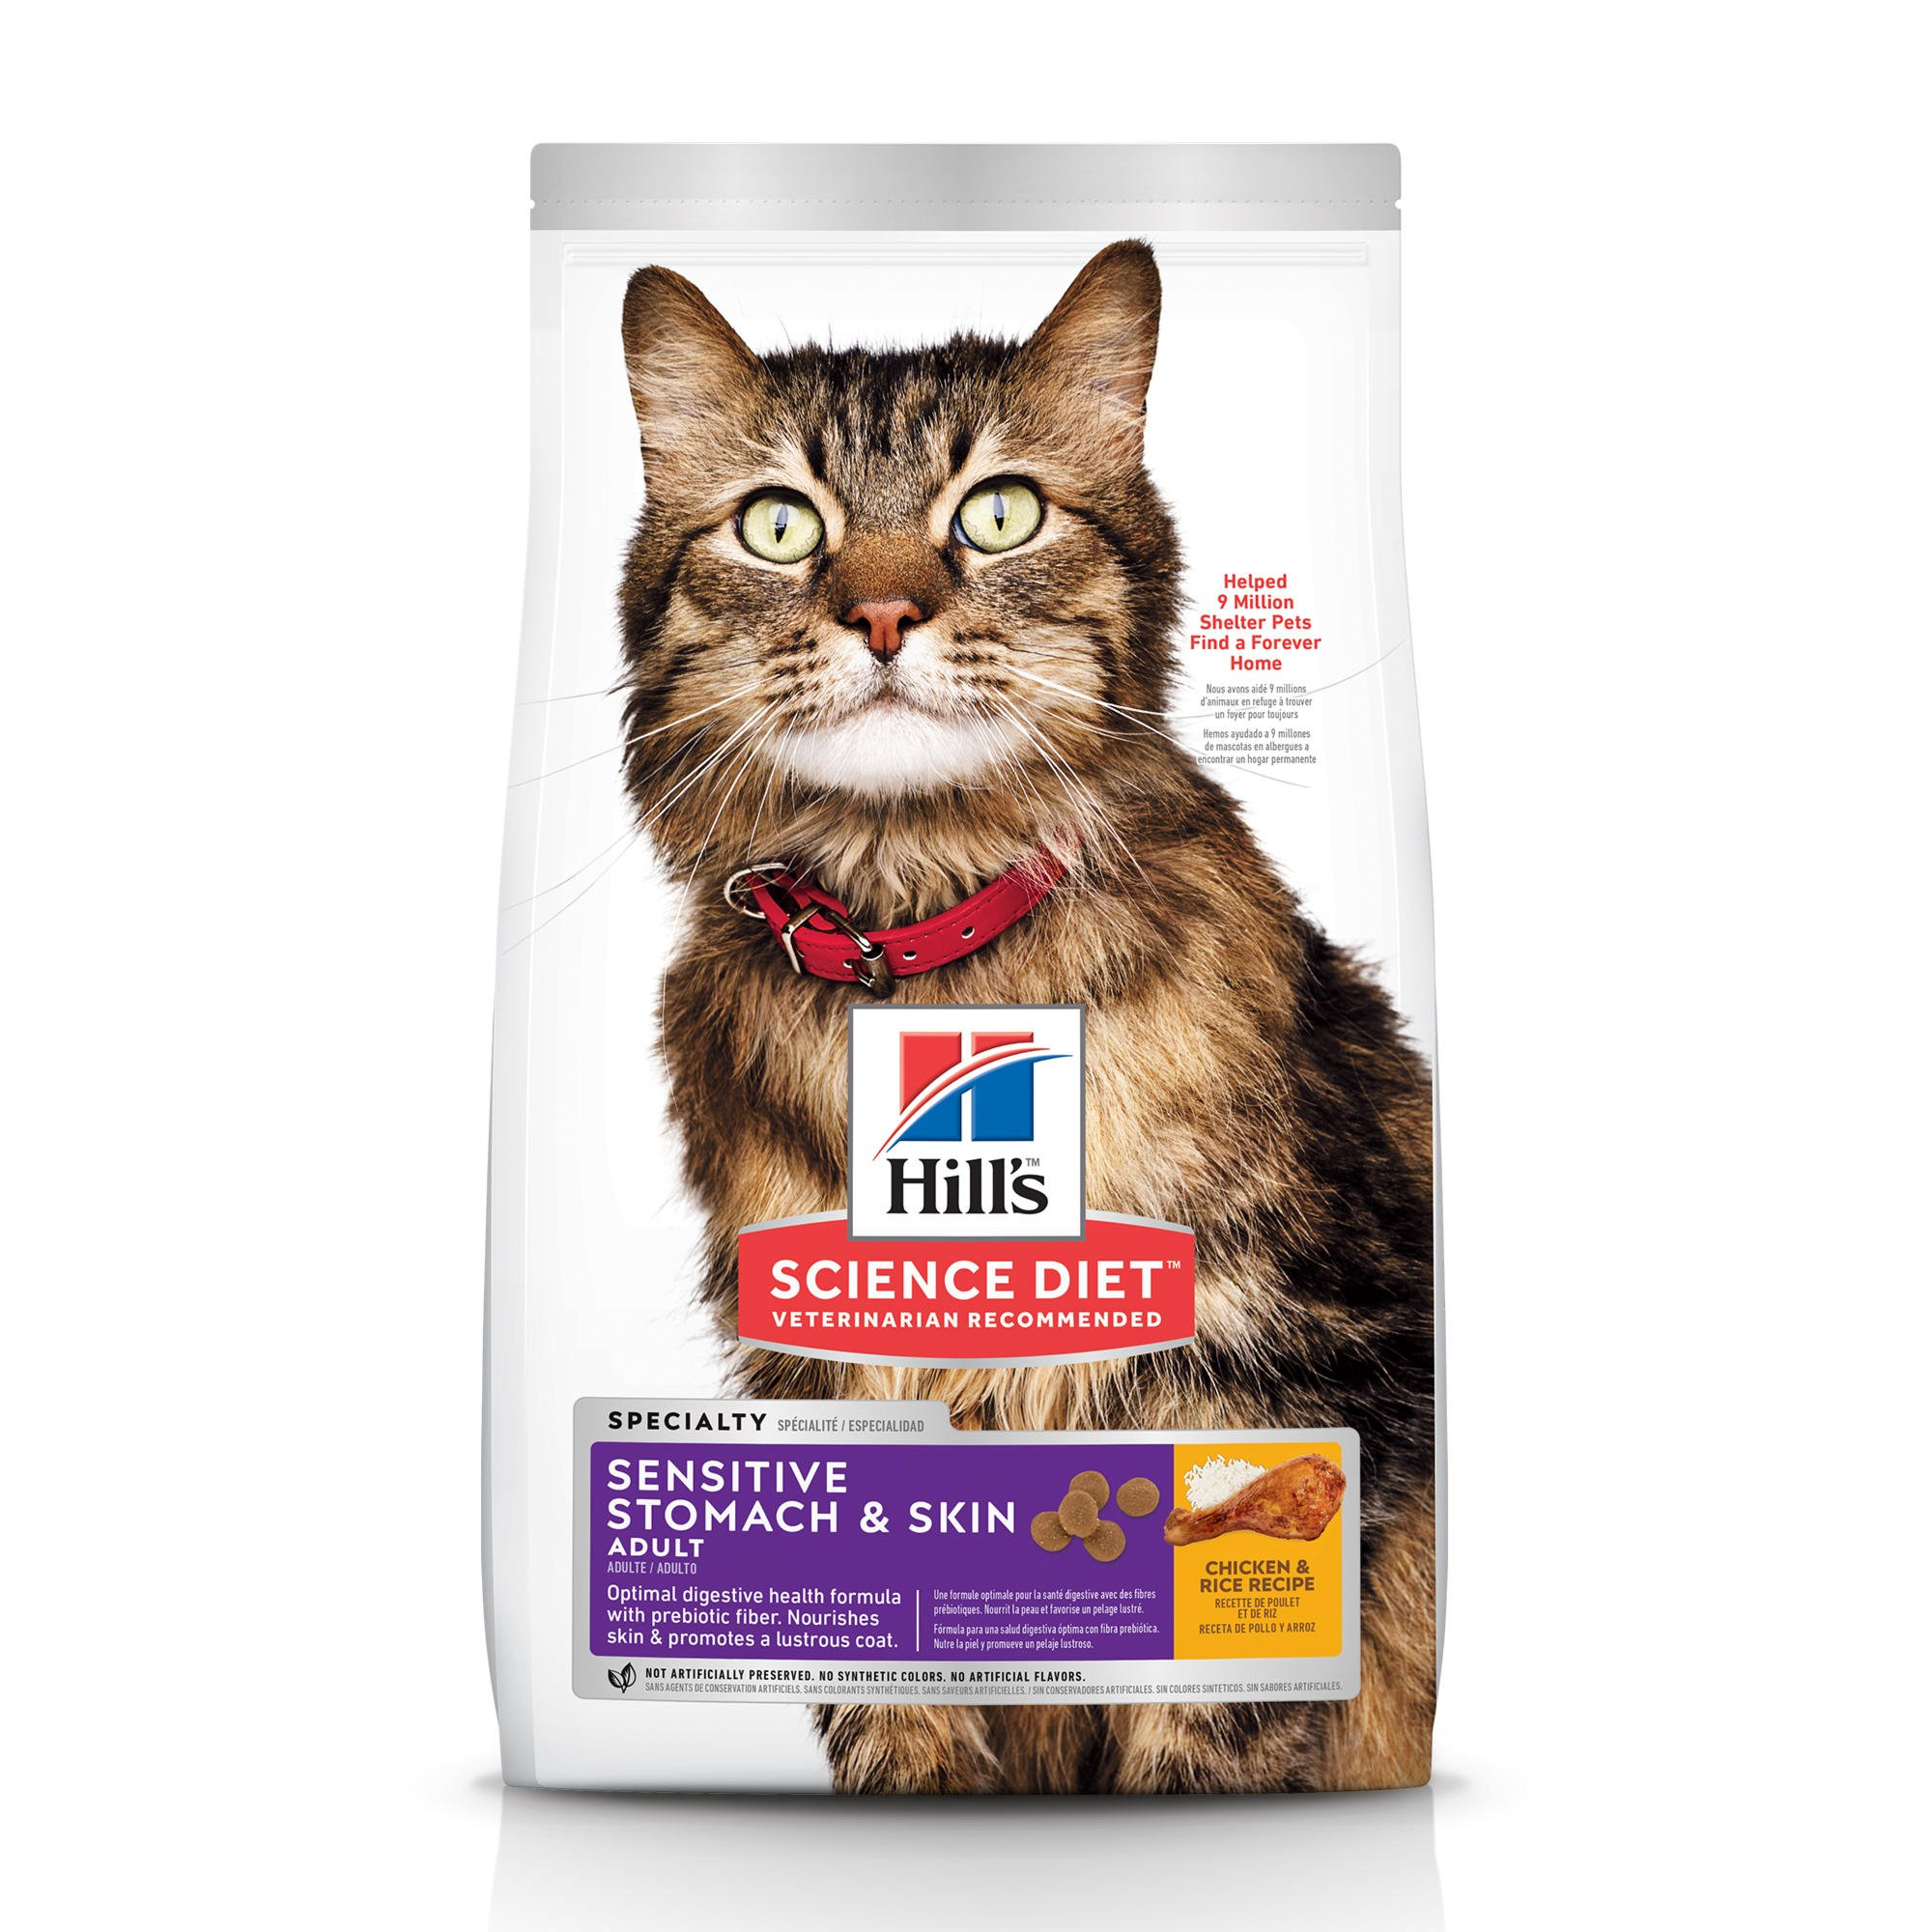 Hill's Science Diet Sensitive Stomach & Skin Adult Cat Food